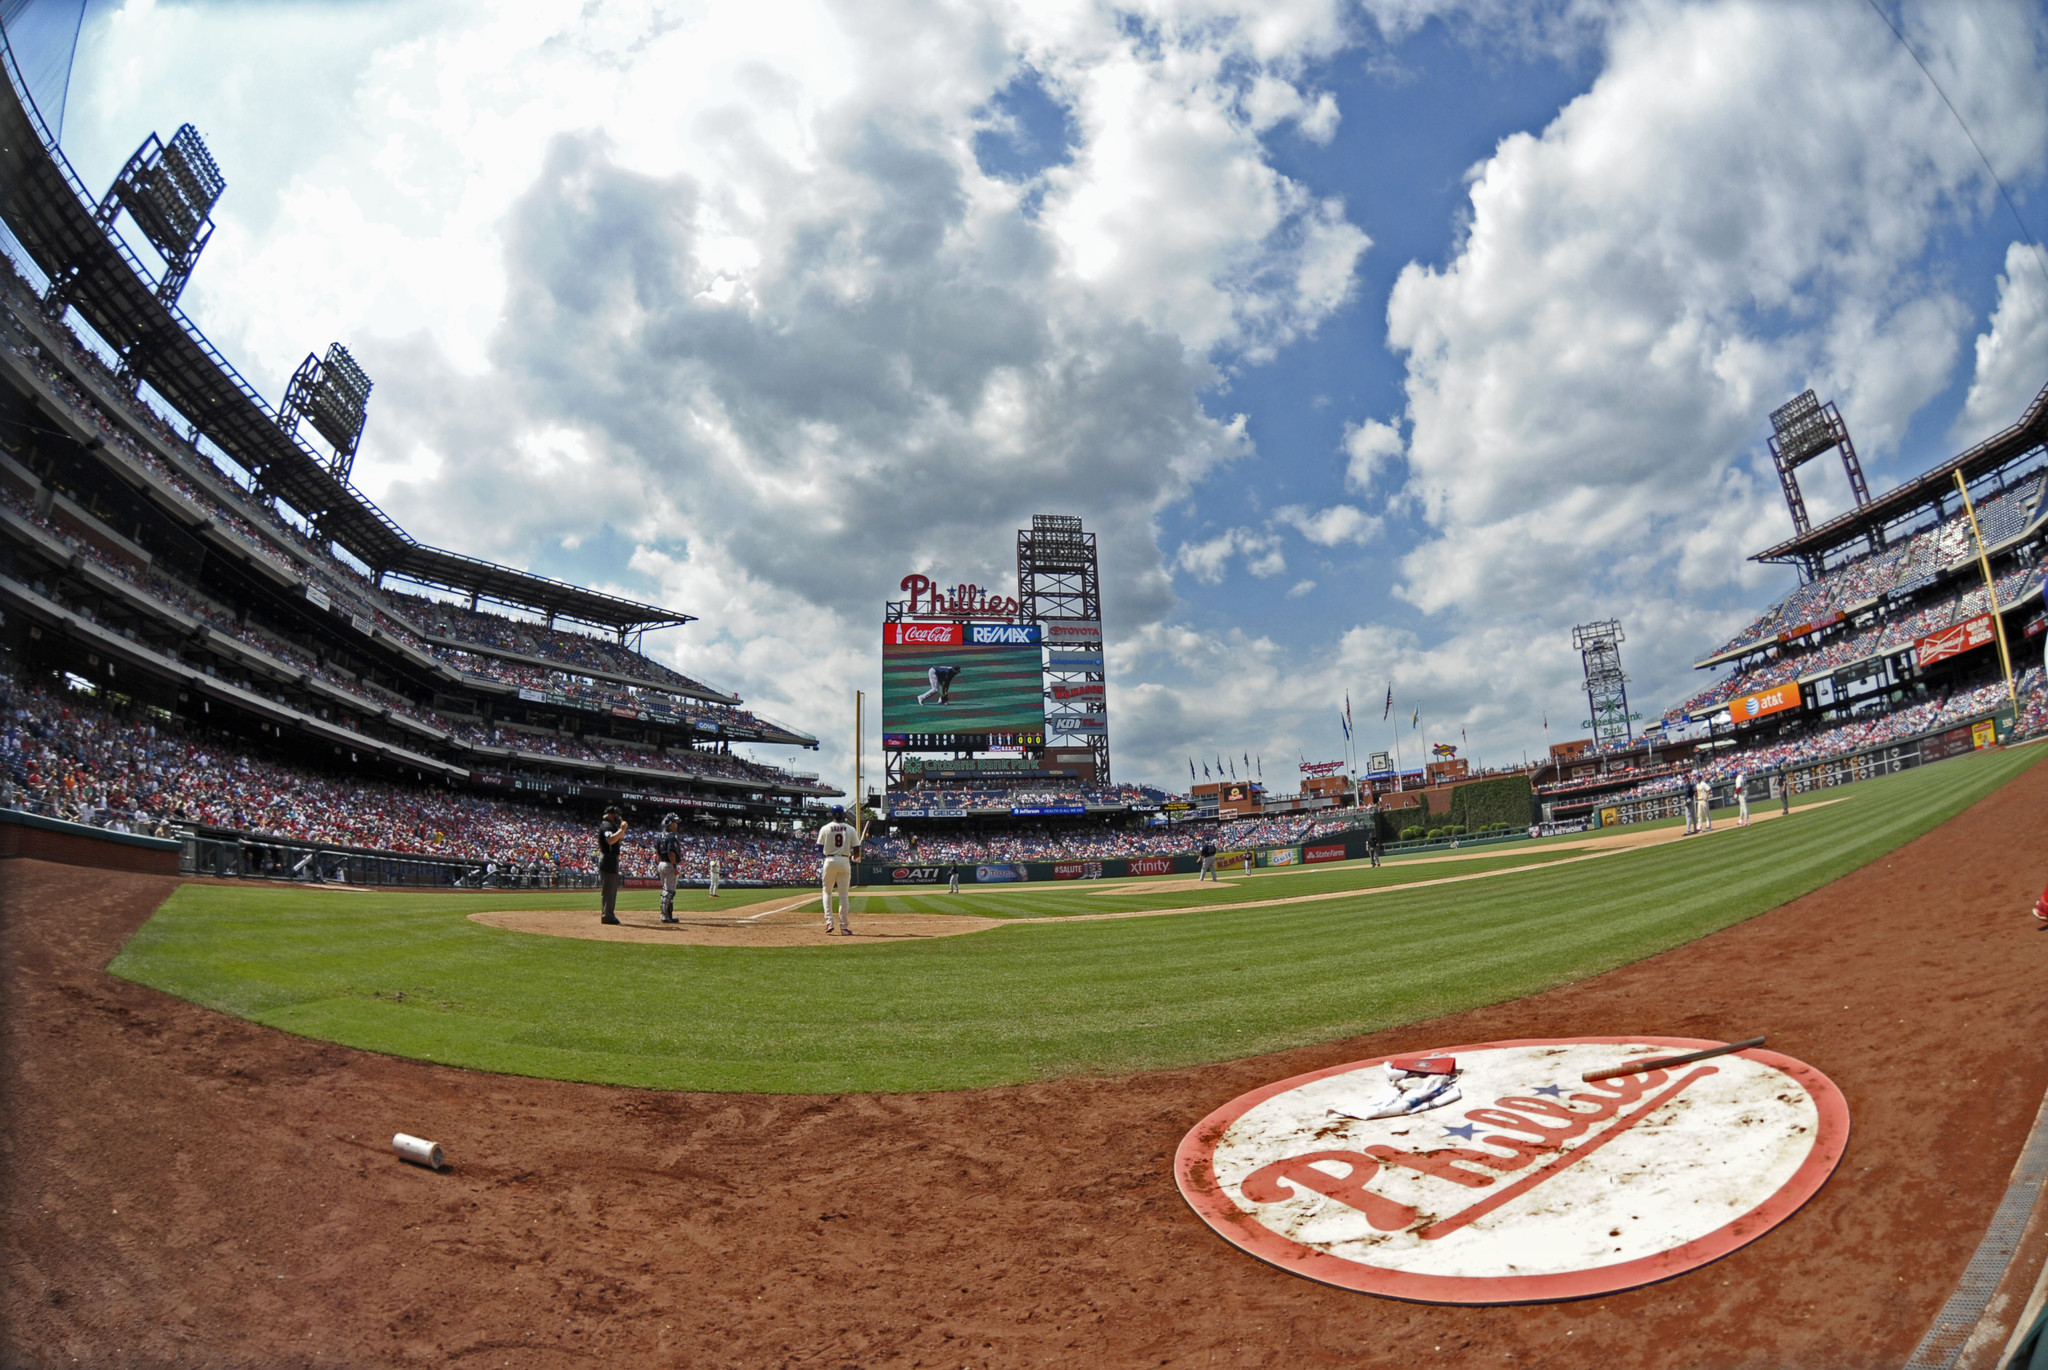 Mc-phillies-mets-start-time-saturday-changed-20160926